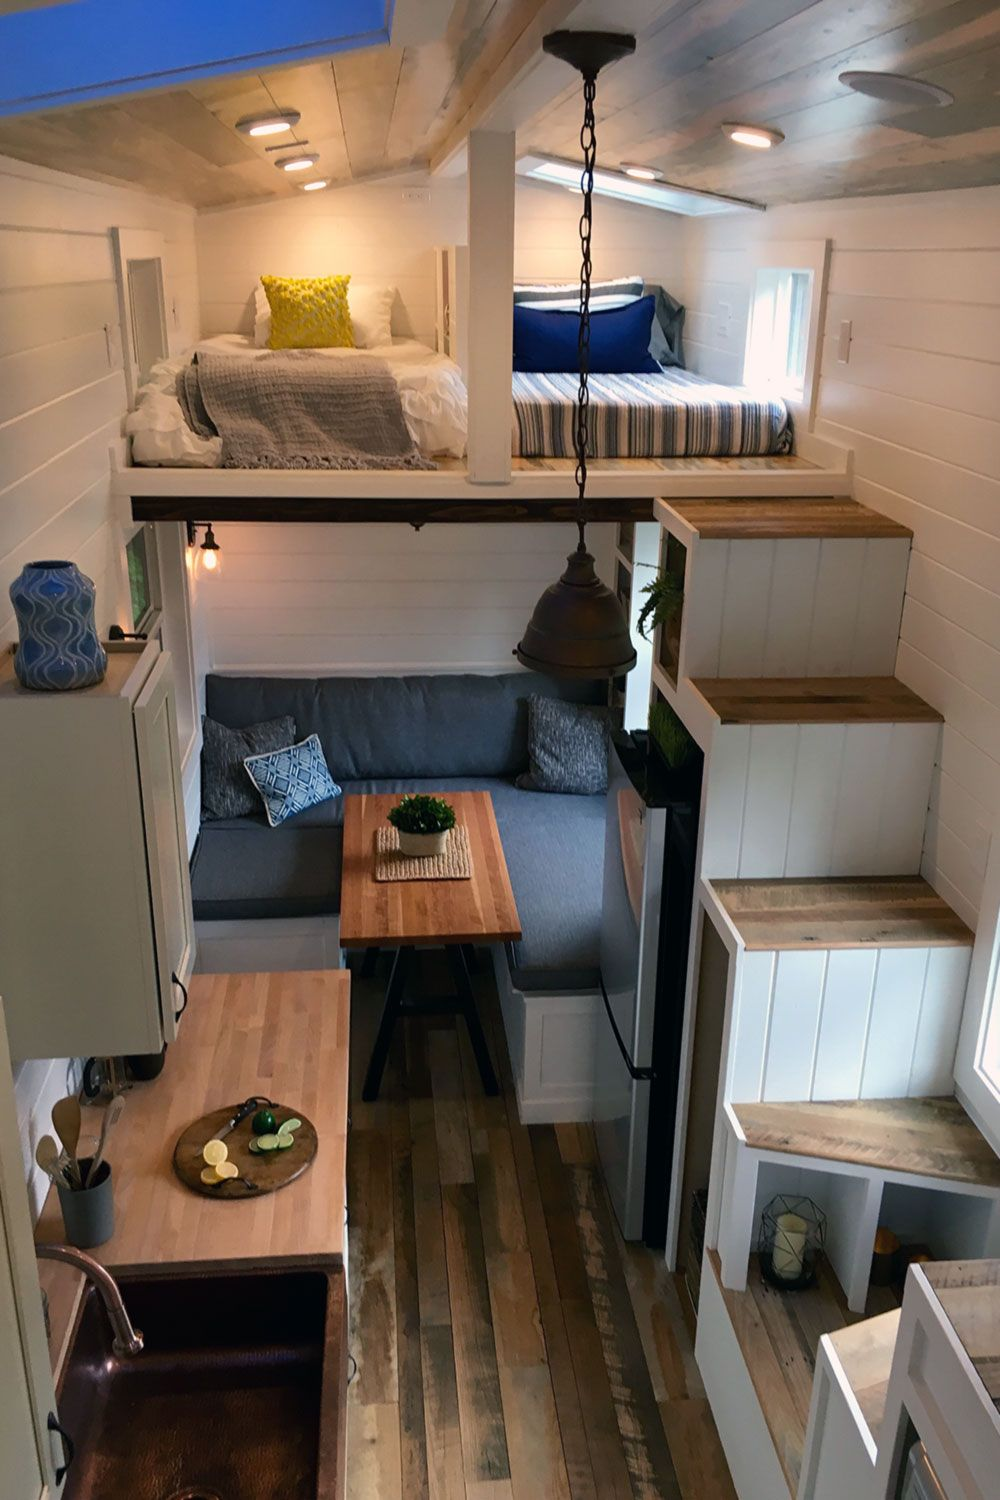 Tiny house town a home blog sharing beautiful tiny homes and houses